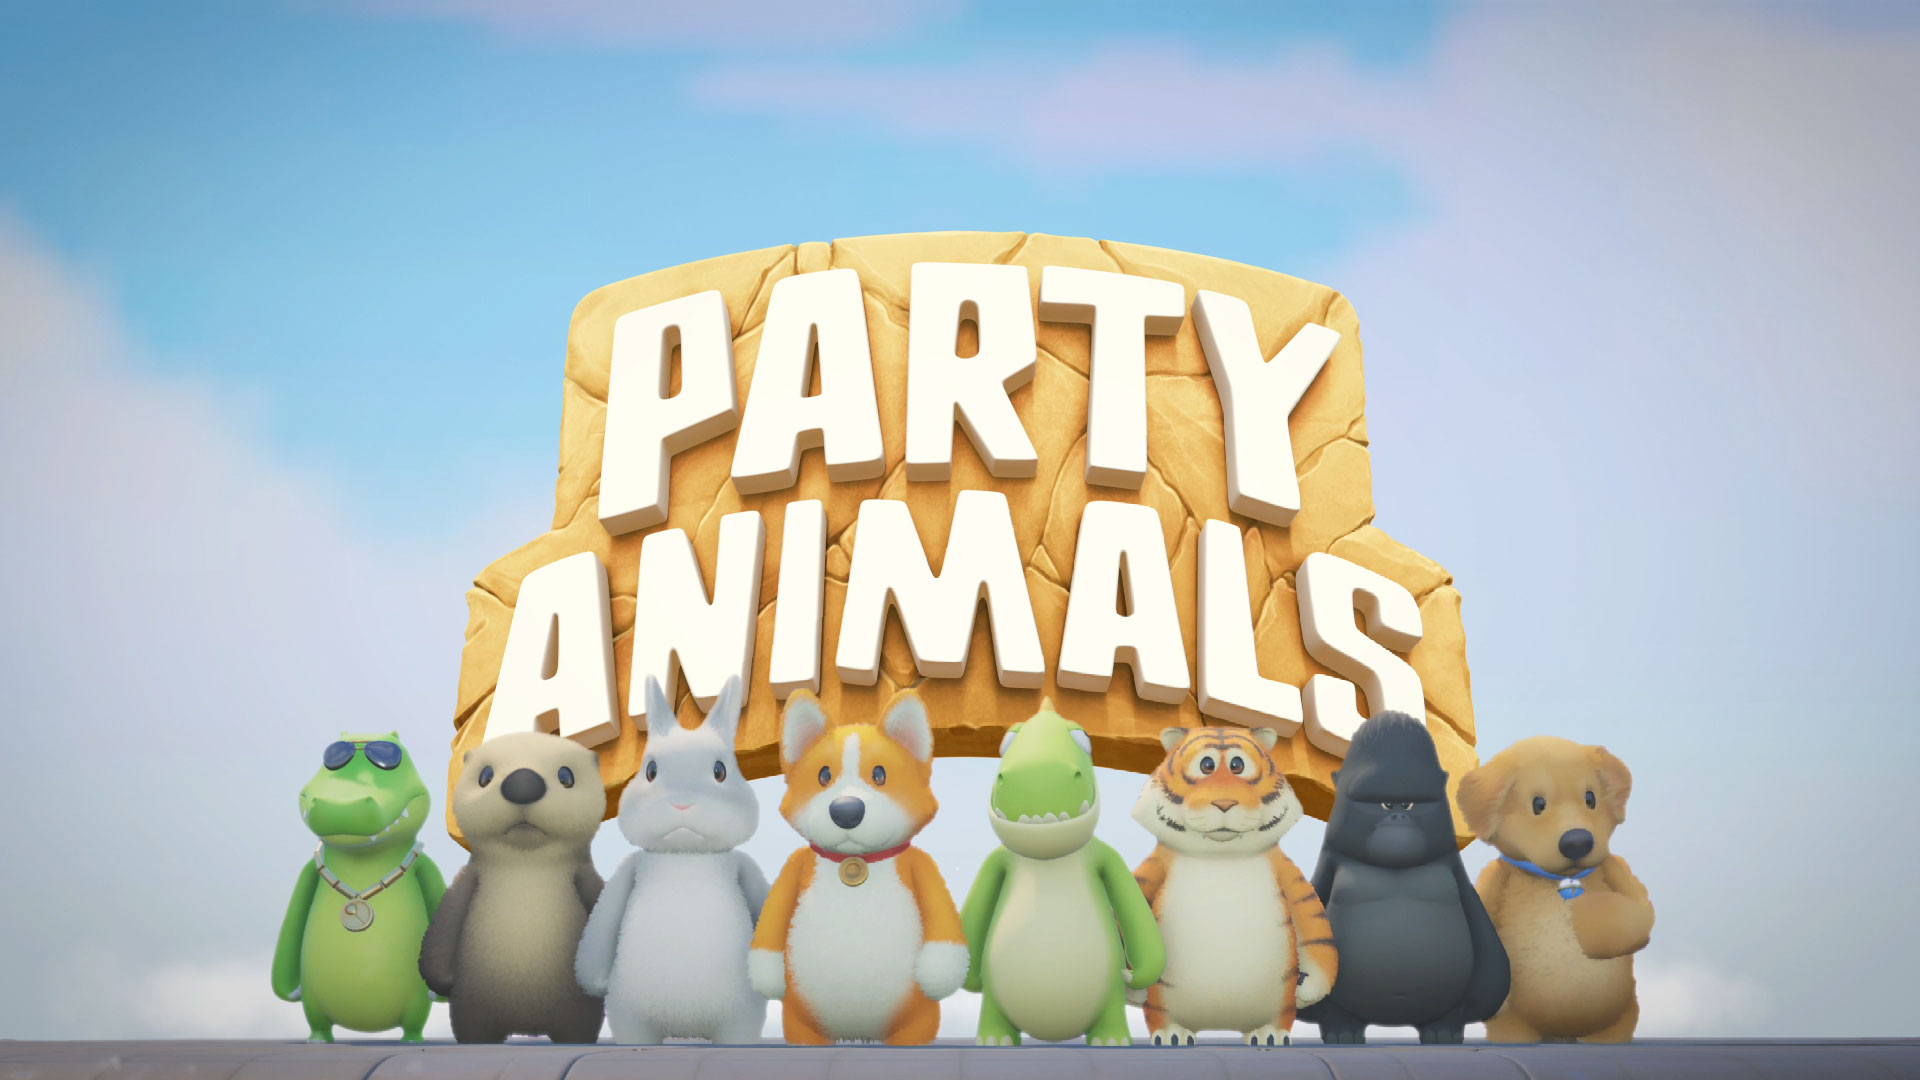 Free Party Animals Wallpaper in 1920x1080